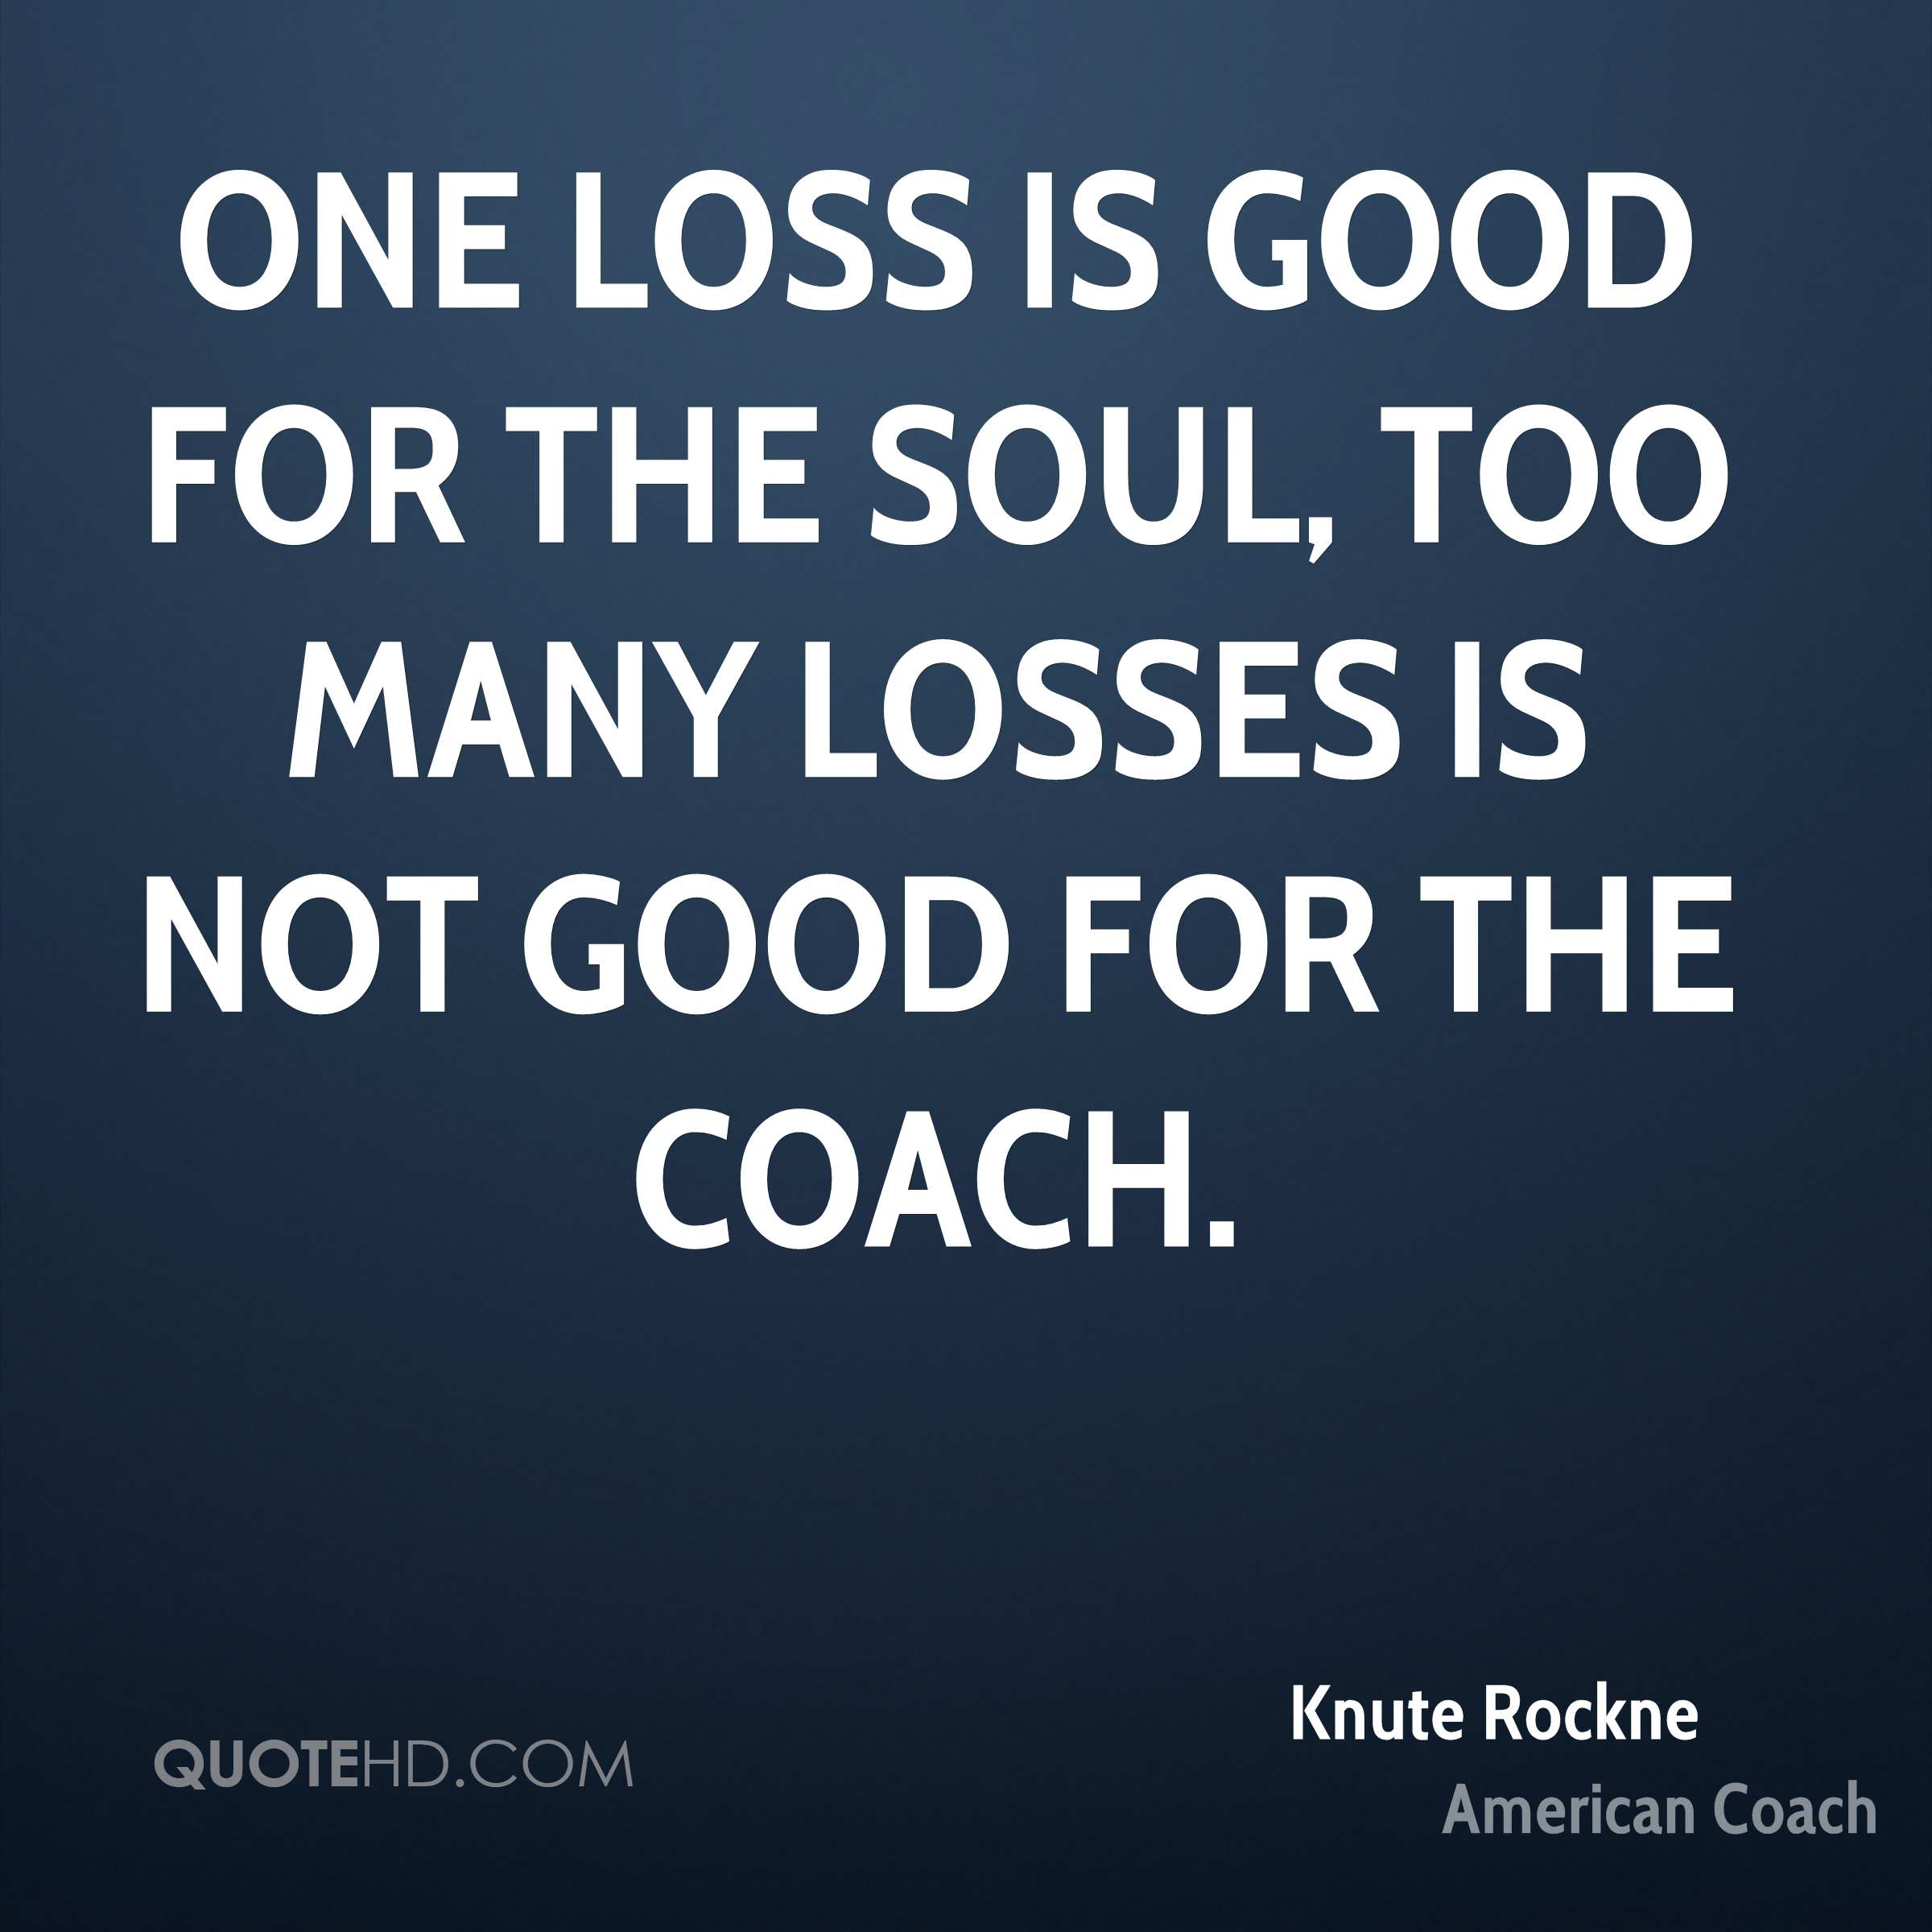 One loss is good for the soul, Too many losses is not good for the coach.